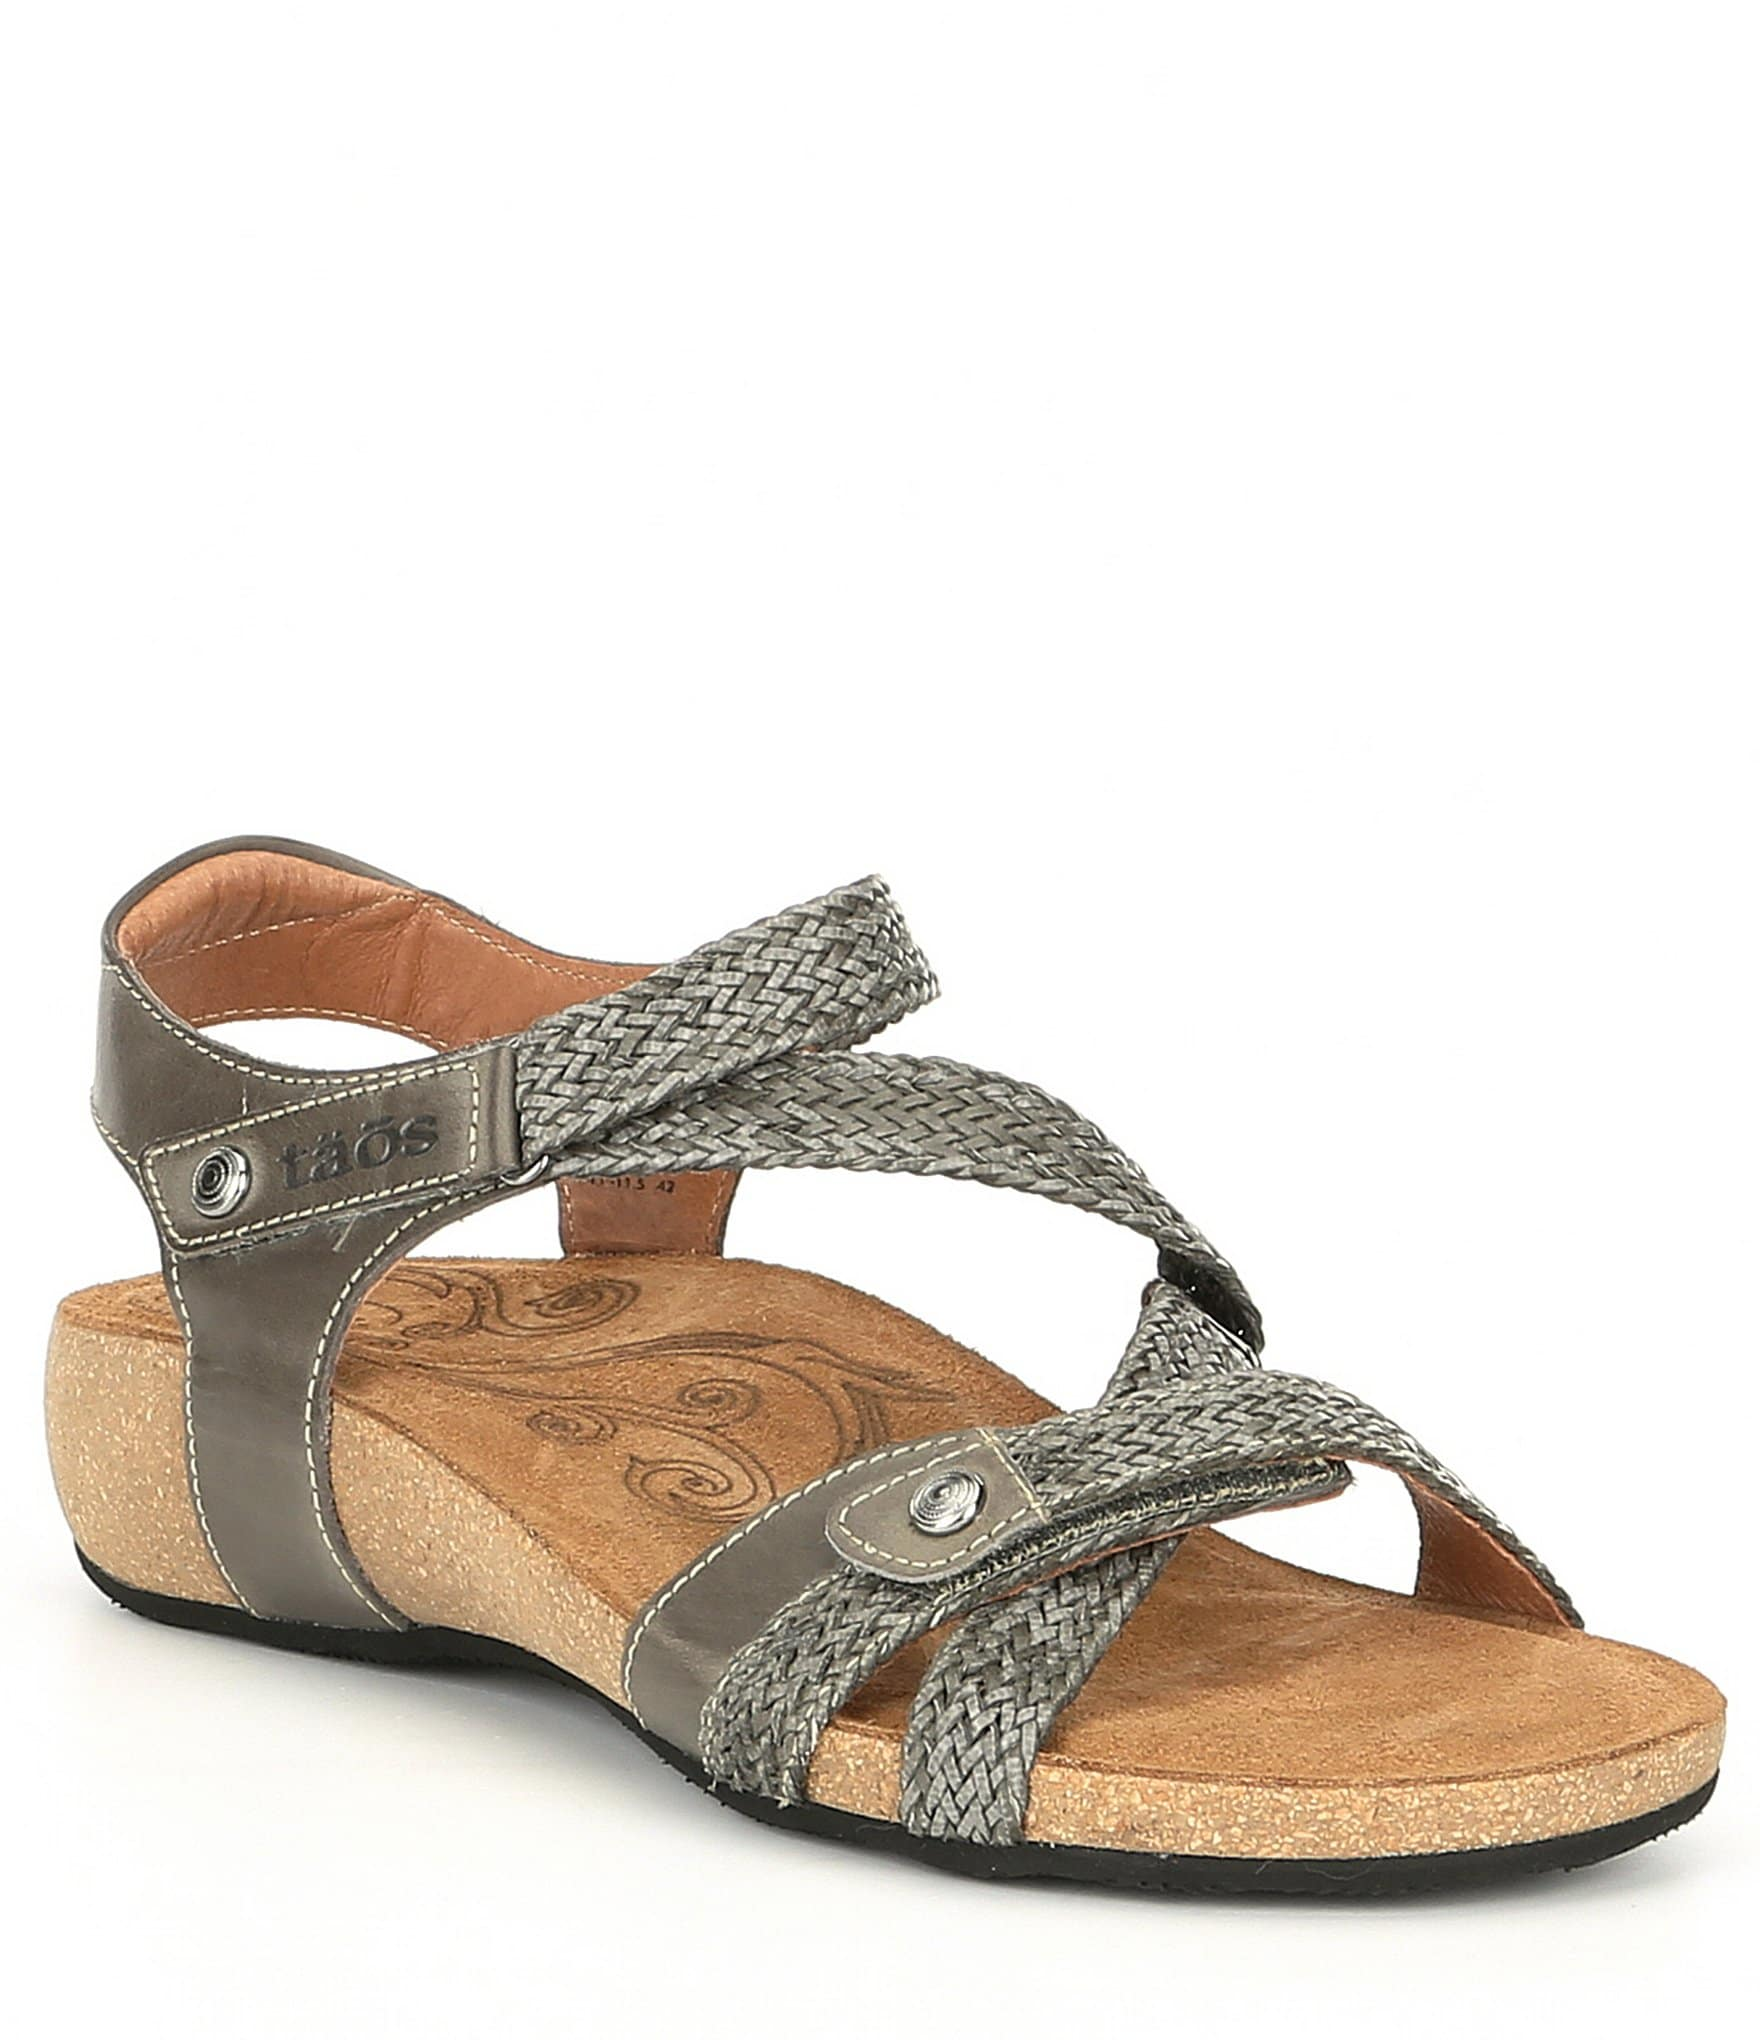 a74e37935d6 Taos Footwear Women s Sandals